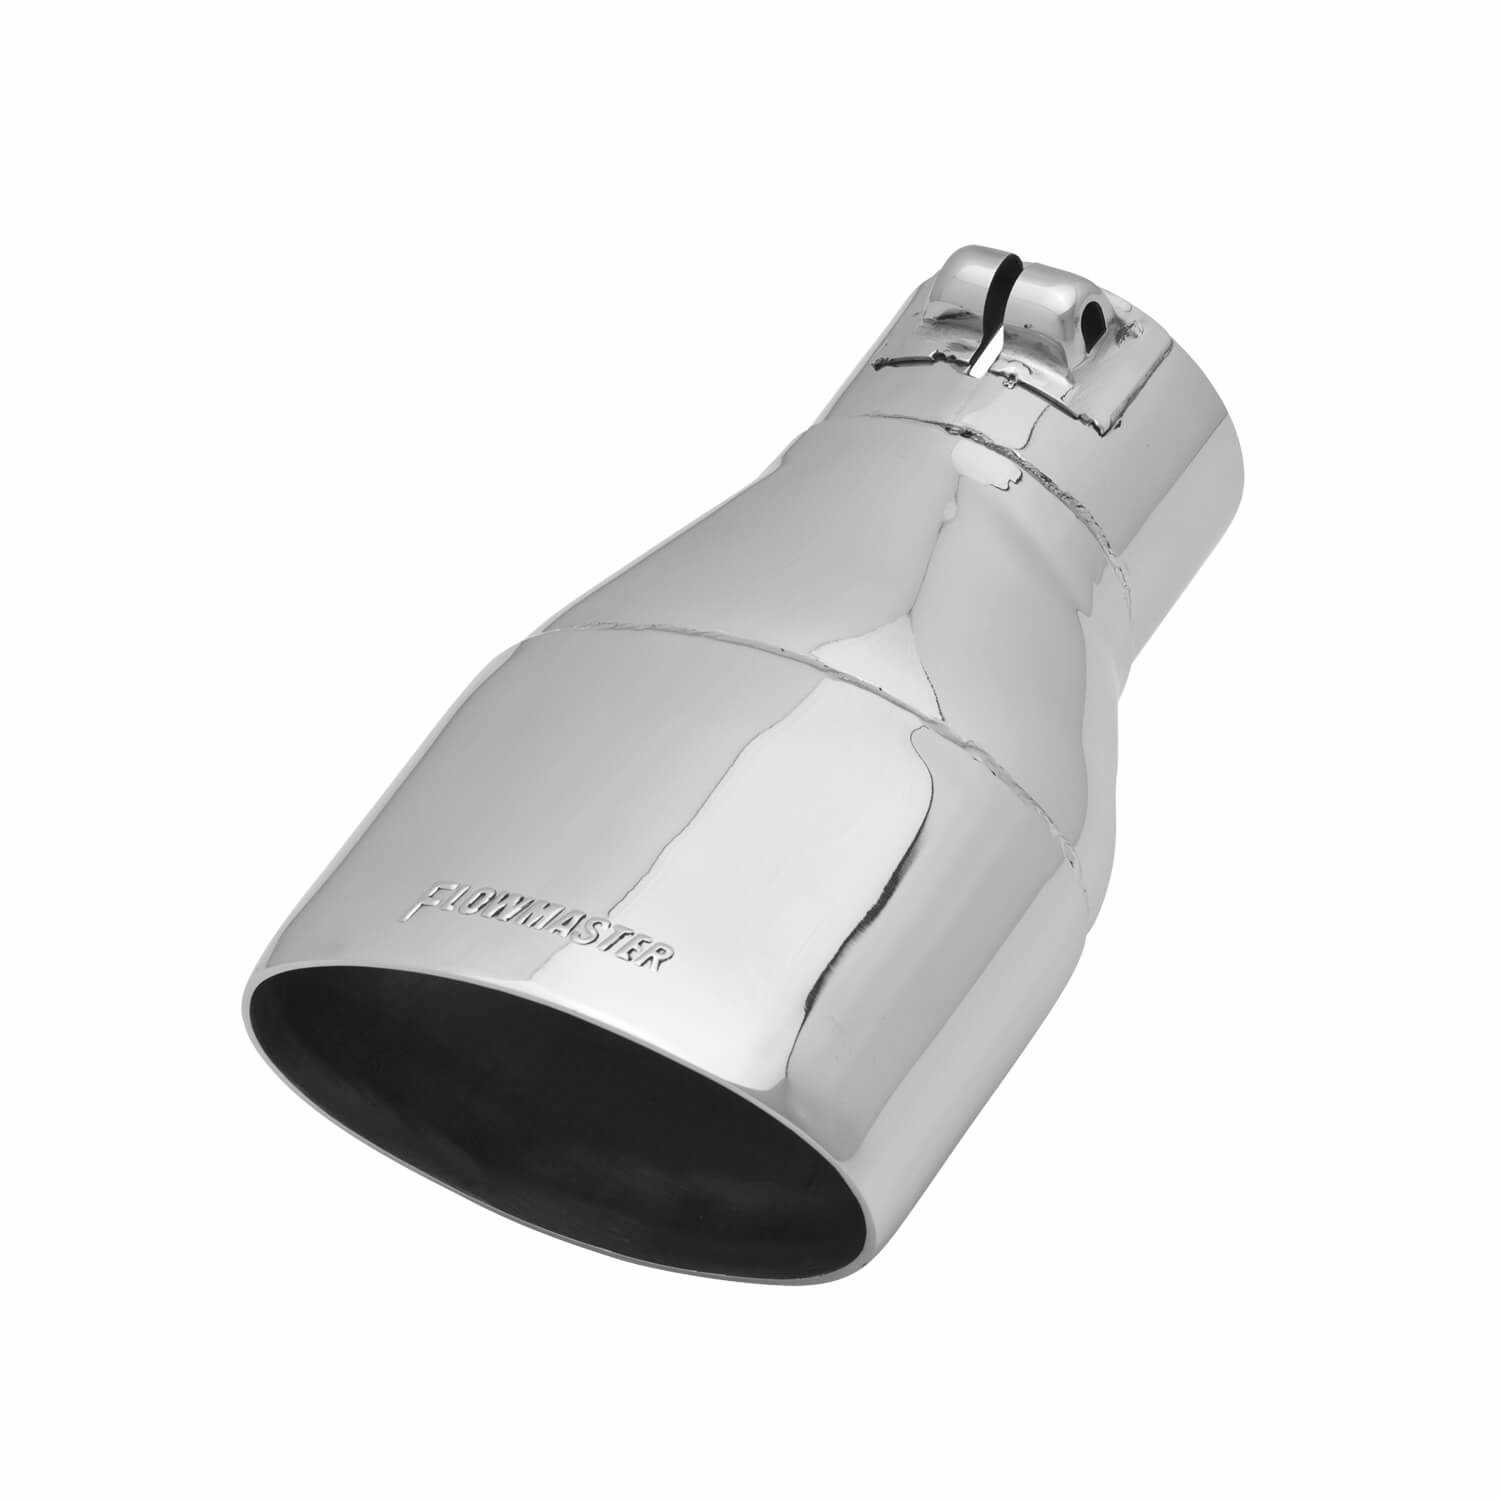 15383 Flowmaster Stainless Steel Exhaust Tip